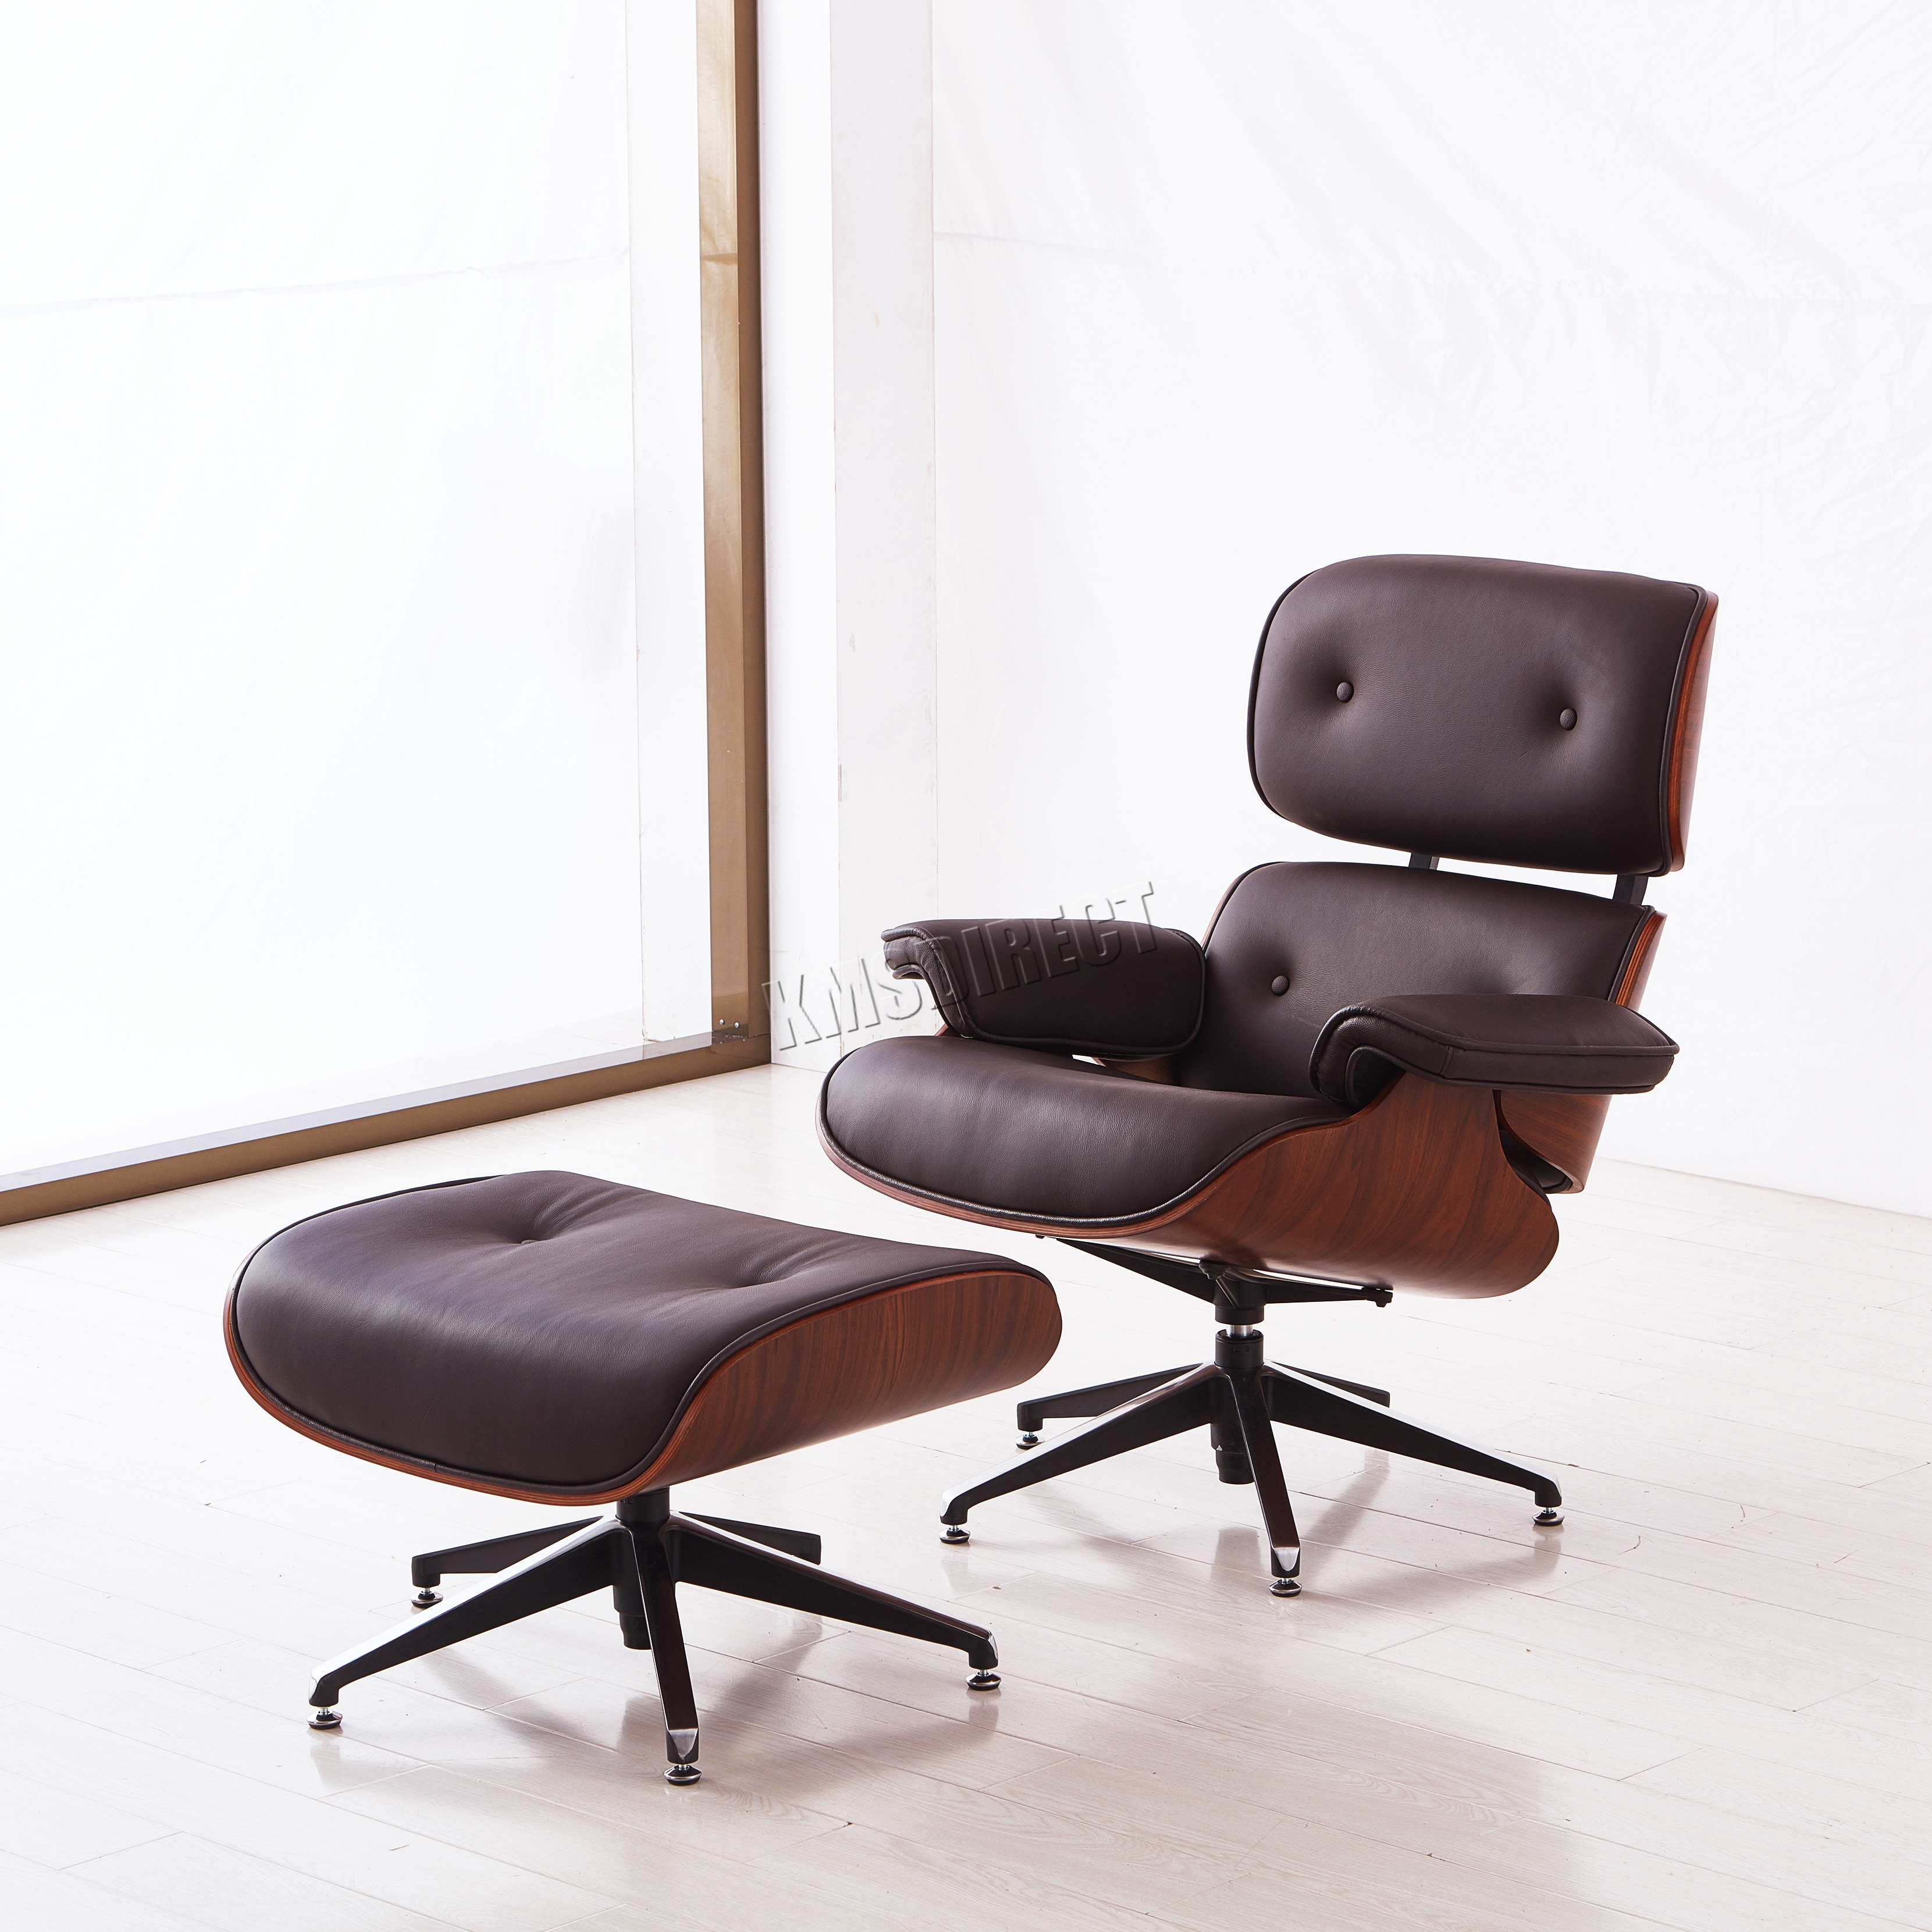 Attractive Sentinel FoxHunter Luxury Lounge Chair And Ottoman Genuine Leather Recliner  Seat Brown